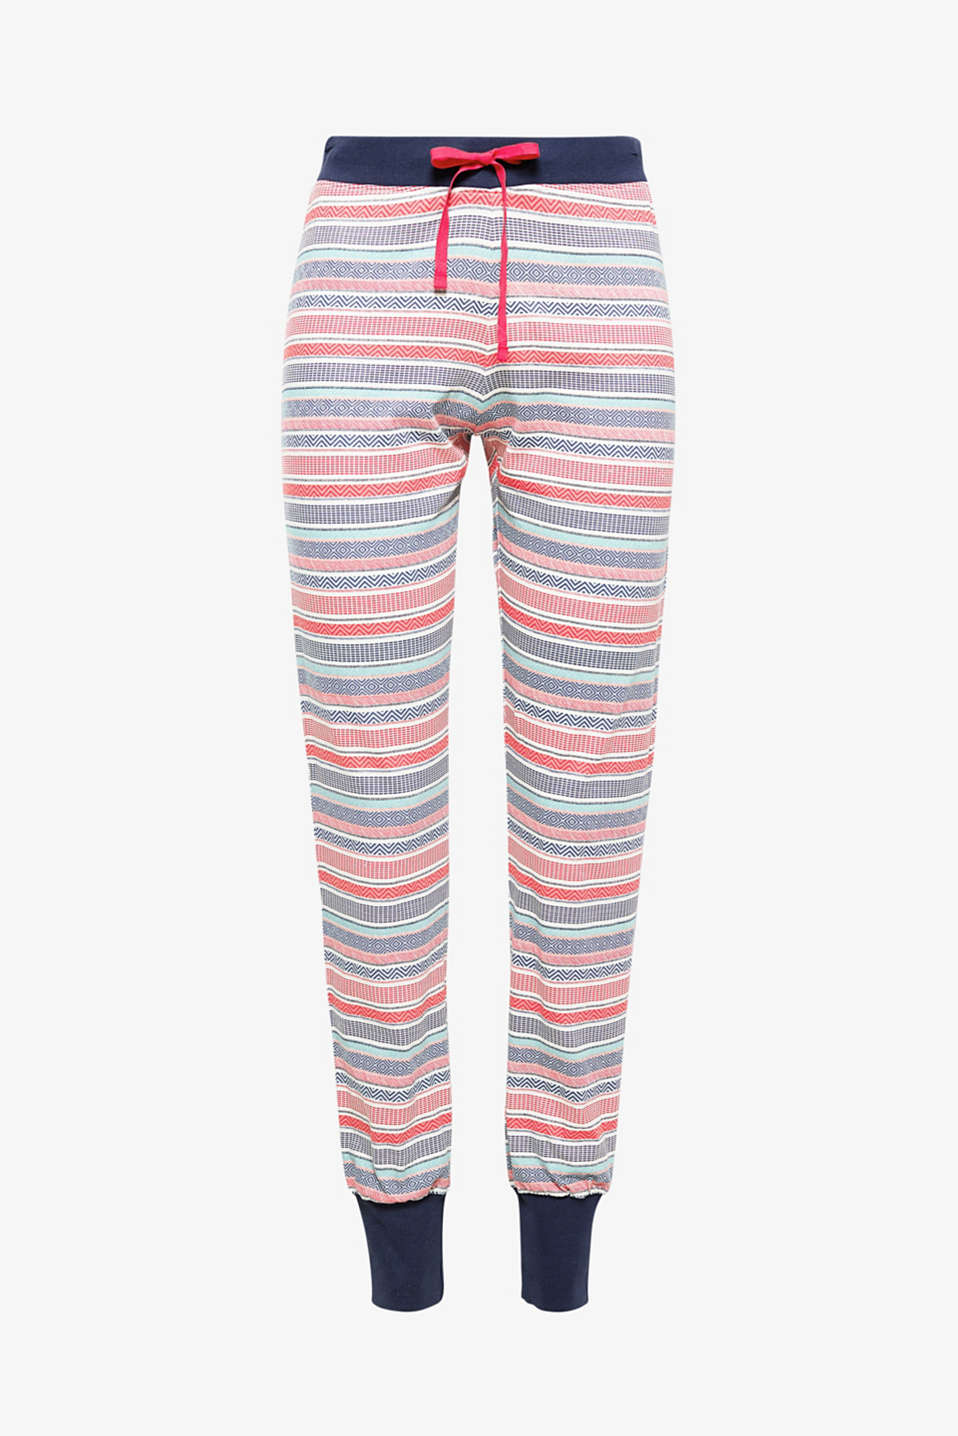 The graphic mixed patterns combined with ribbed leg cuffs give these soft jersey bottoms their cheerful look!